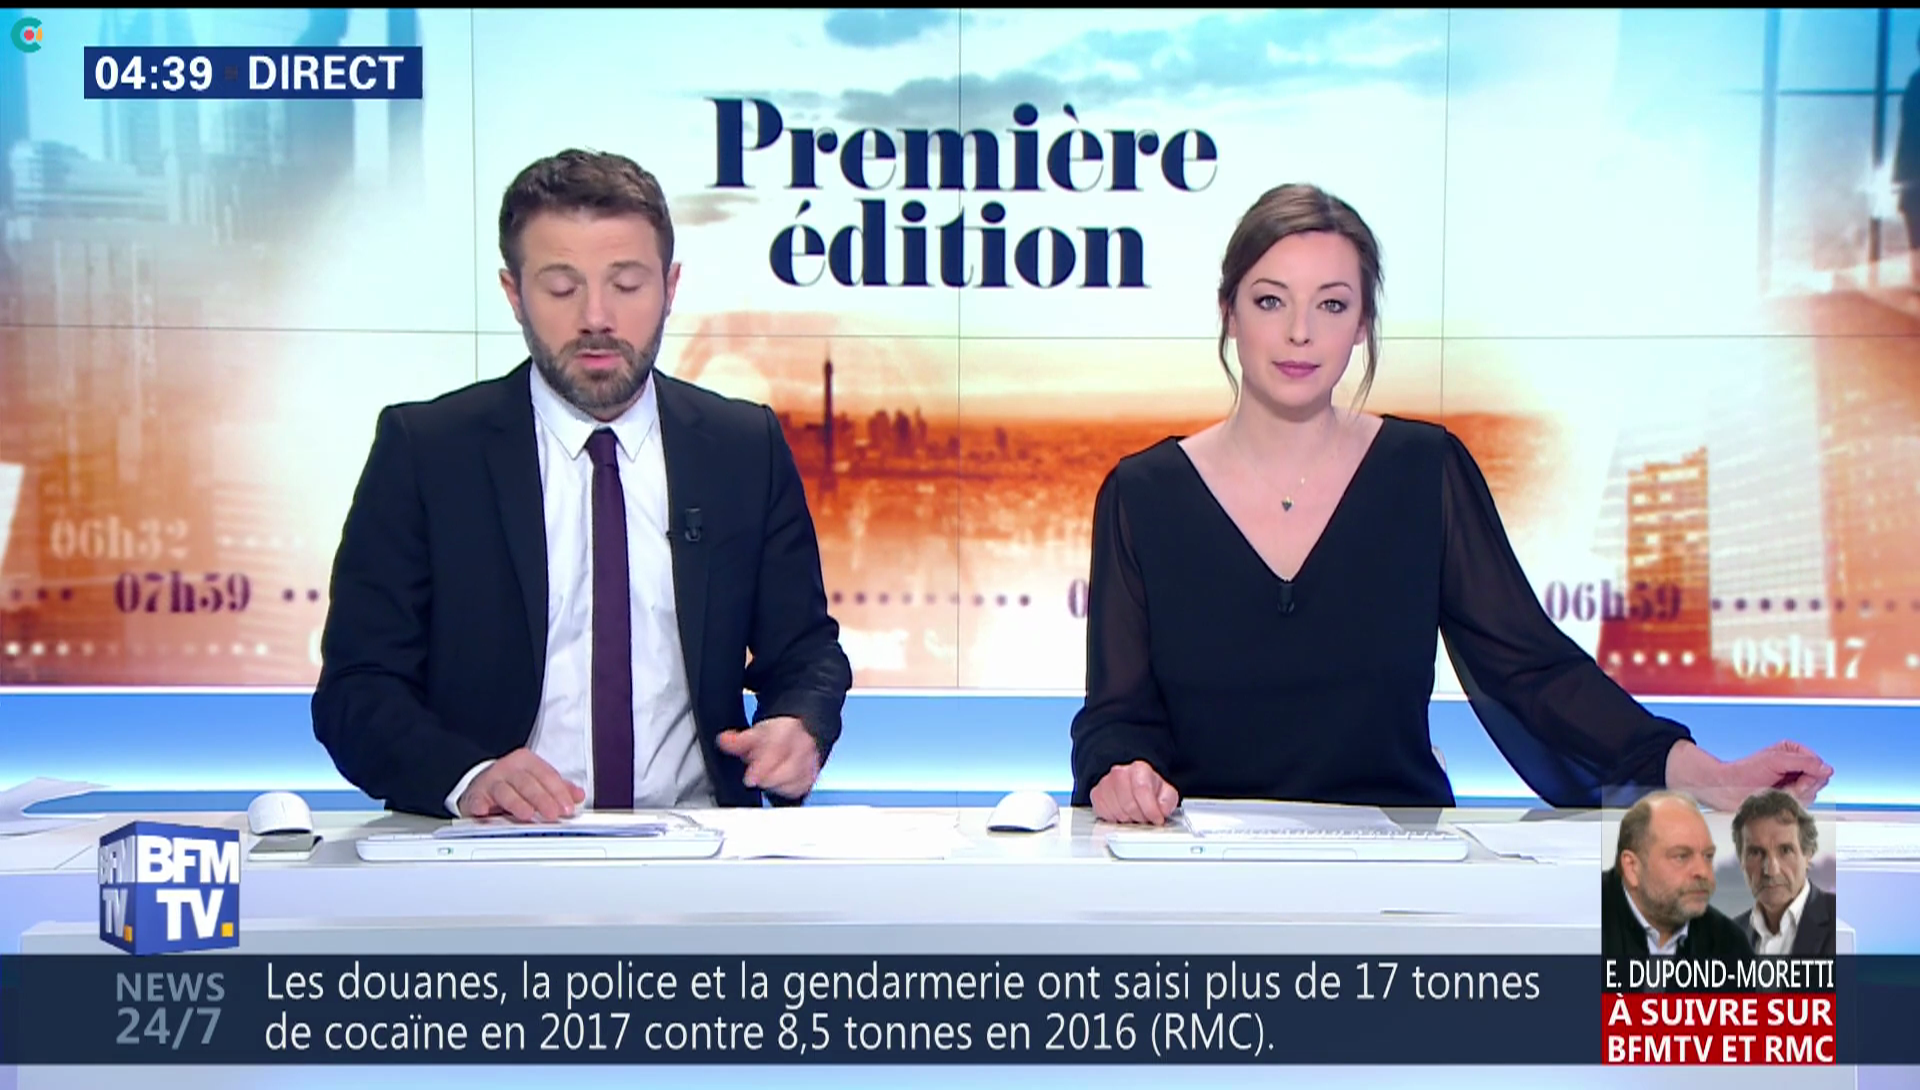 carolinedieudonne03.2018_02_02_journalpremiereeditionBFMTV